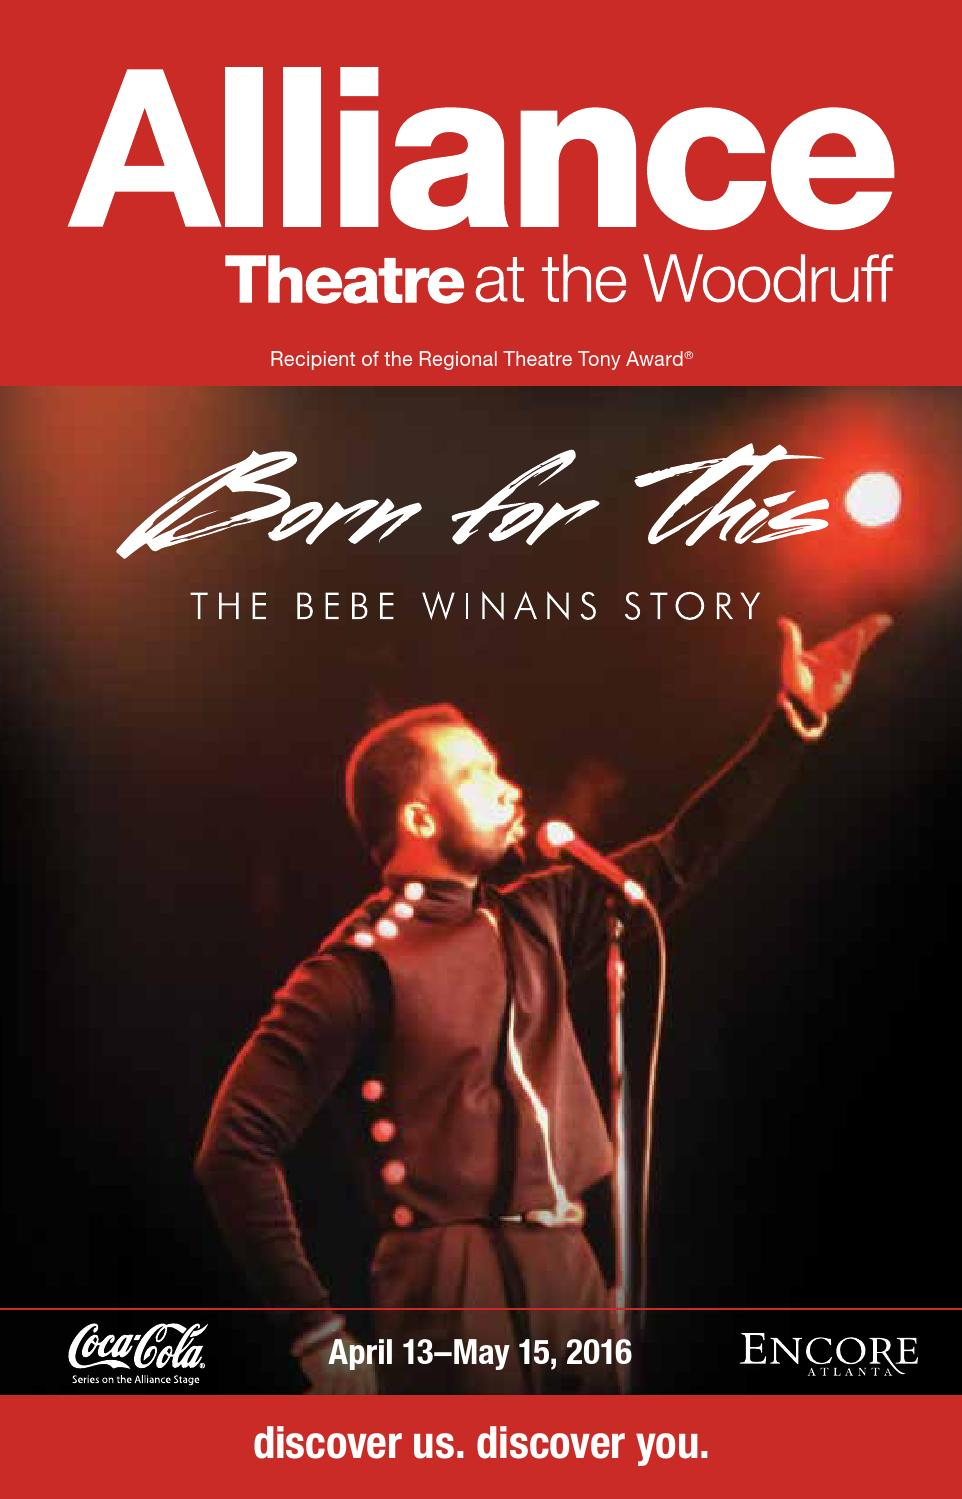 'Born for This: The BeBe Winans Story' at the Alliance Theatre by Encore  Atlanta - issuu